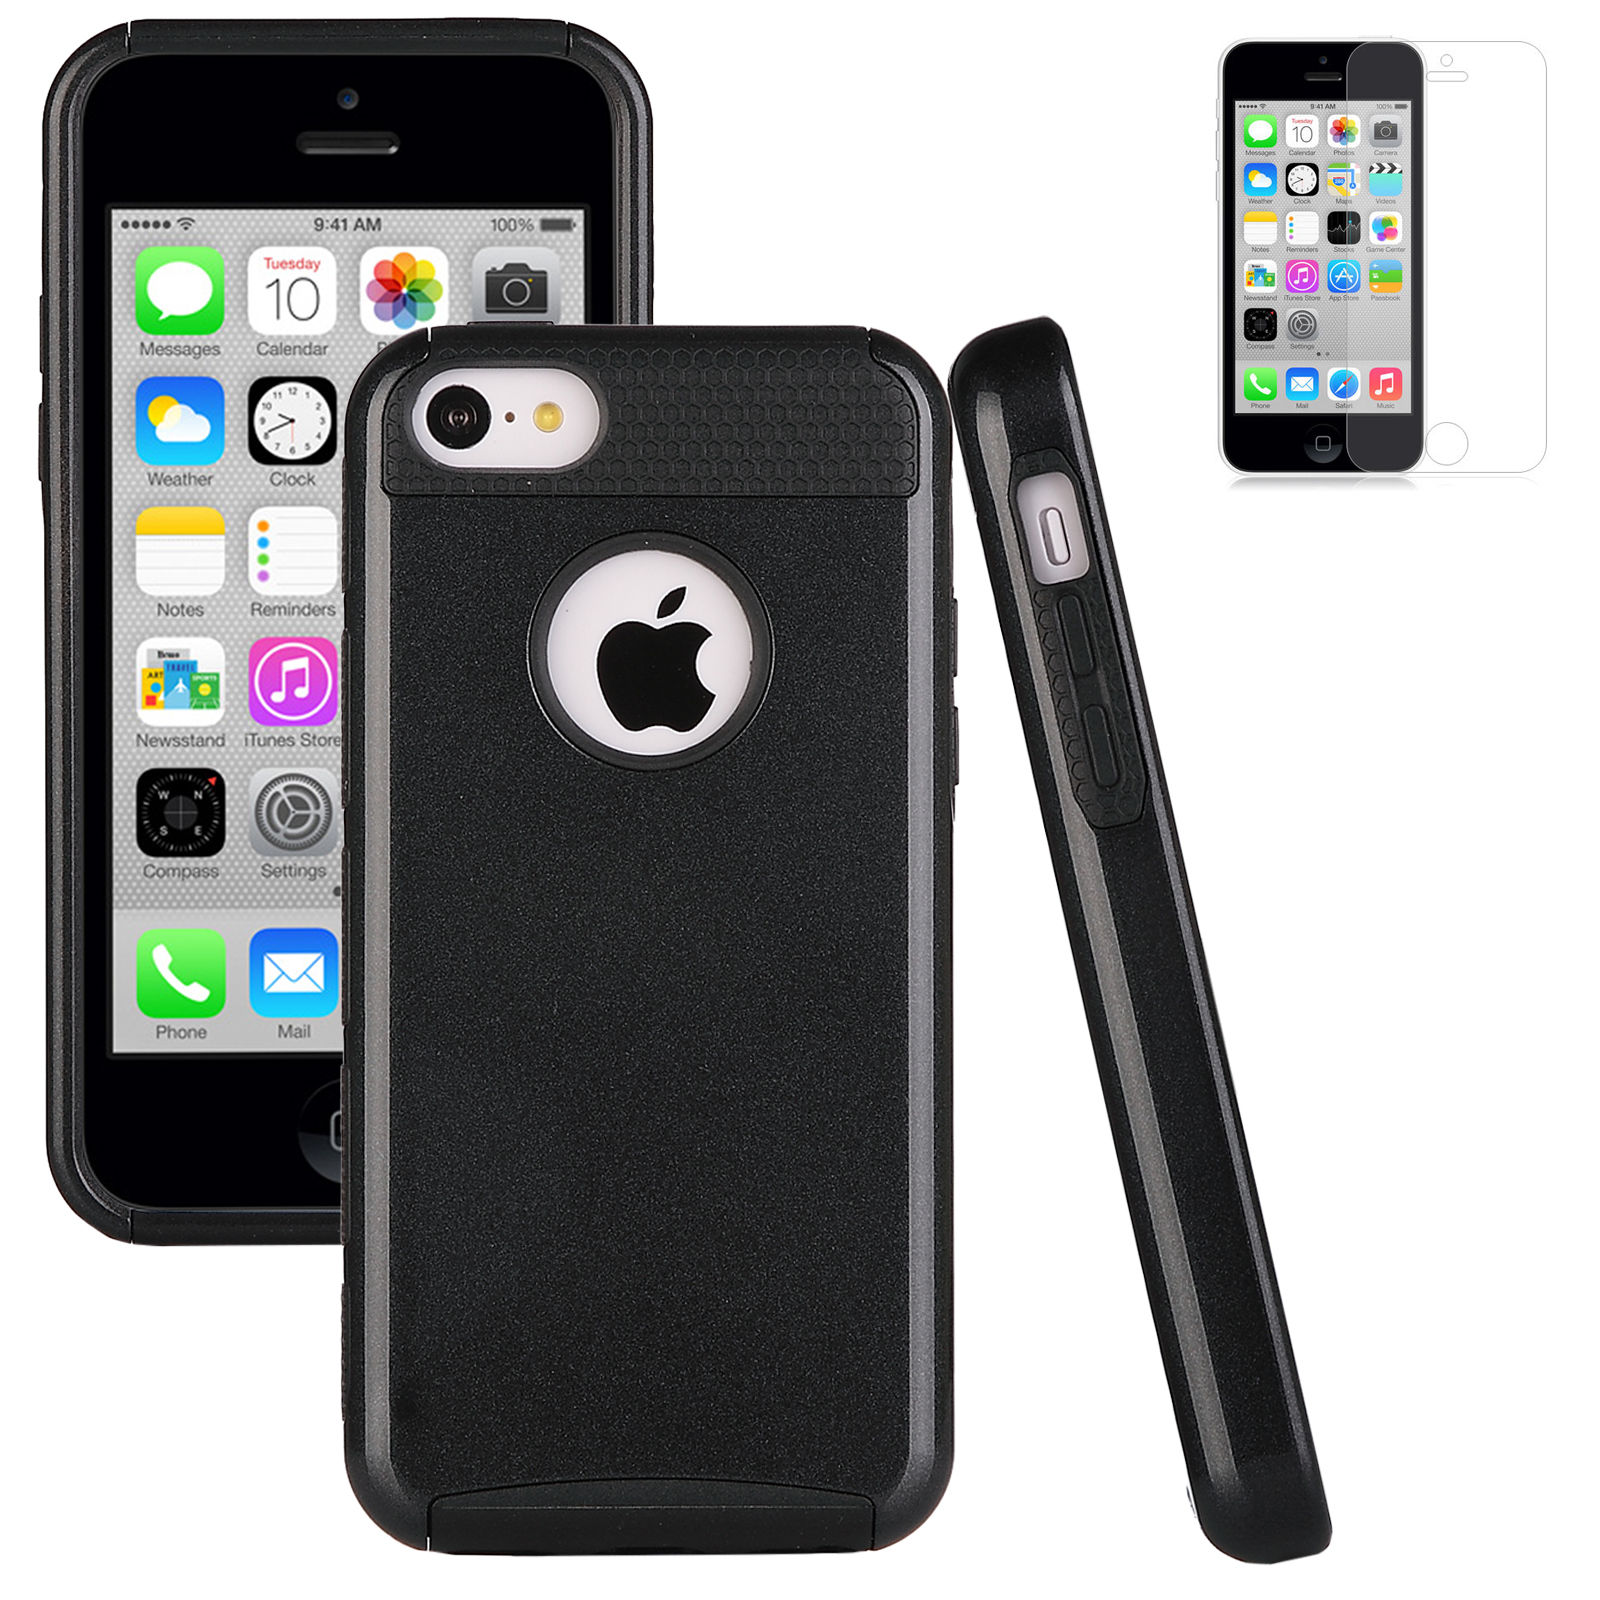 iphone 5c free heavy duty shock proof cover for iphone 5c free 4991